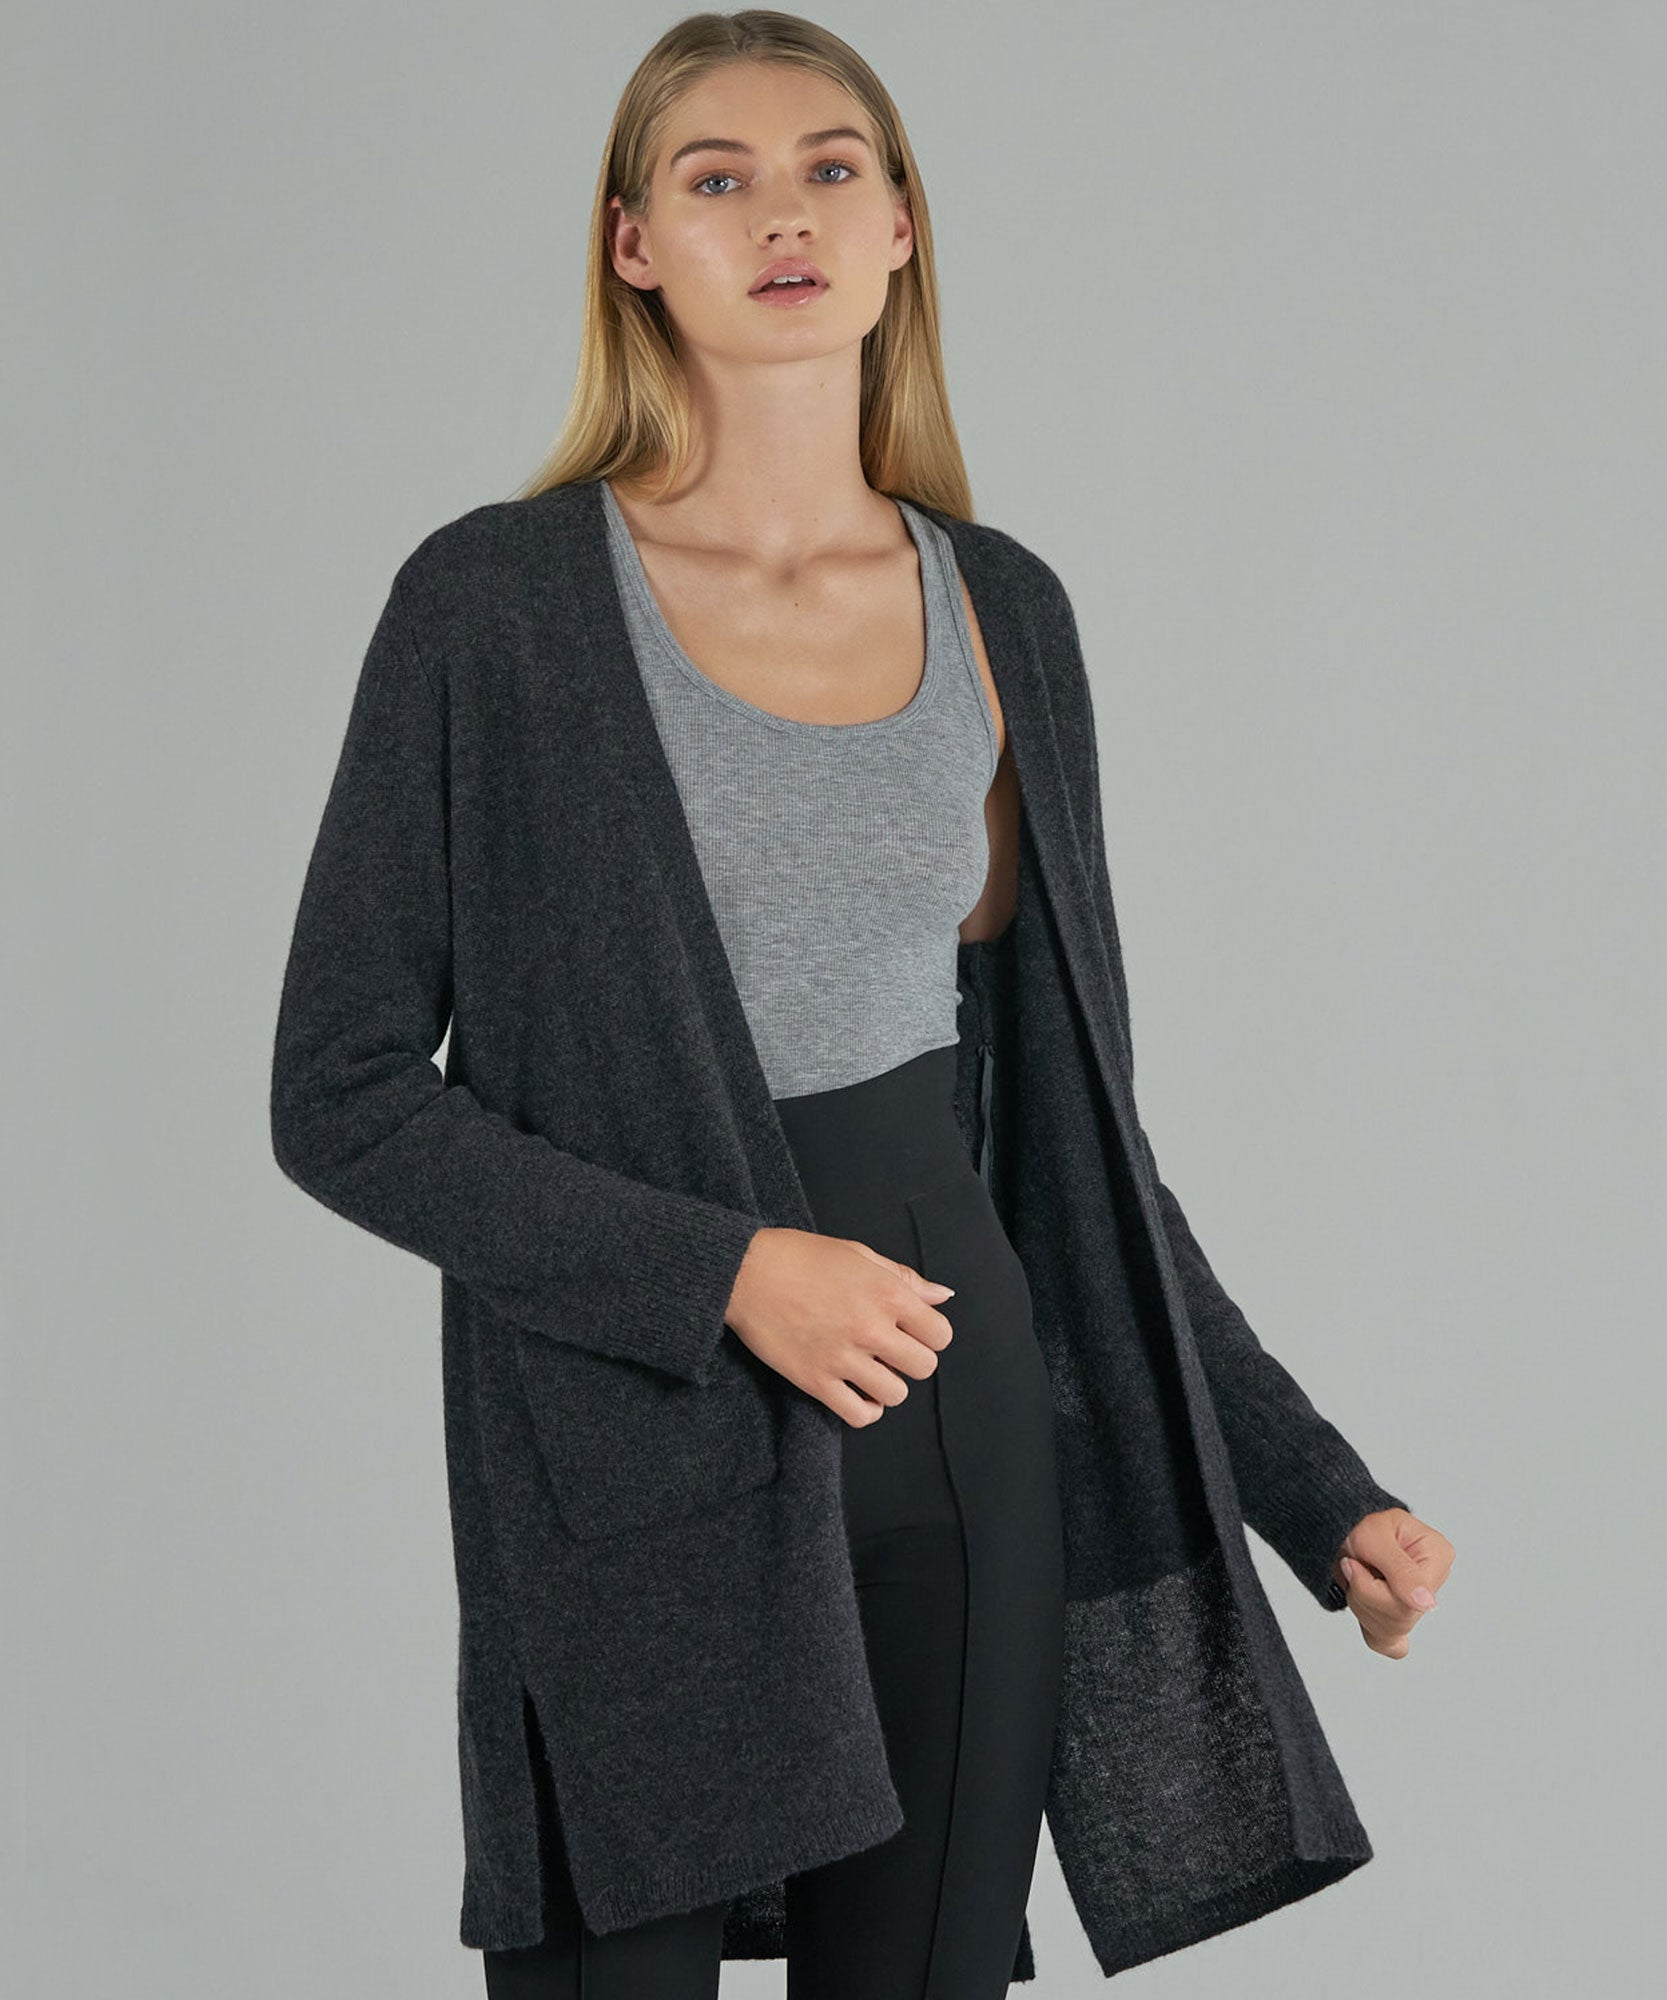 Charcoal Cashmere Cardigan - Women's Luxe Sweater by ATM Anthony Thomas Melillo